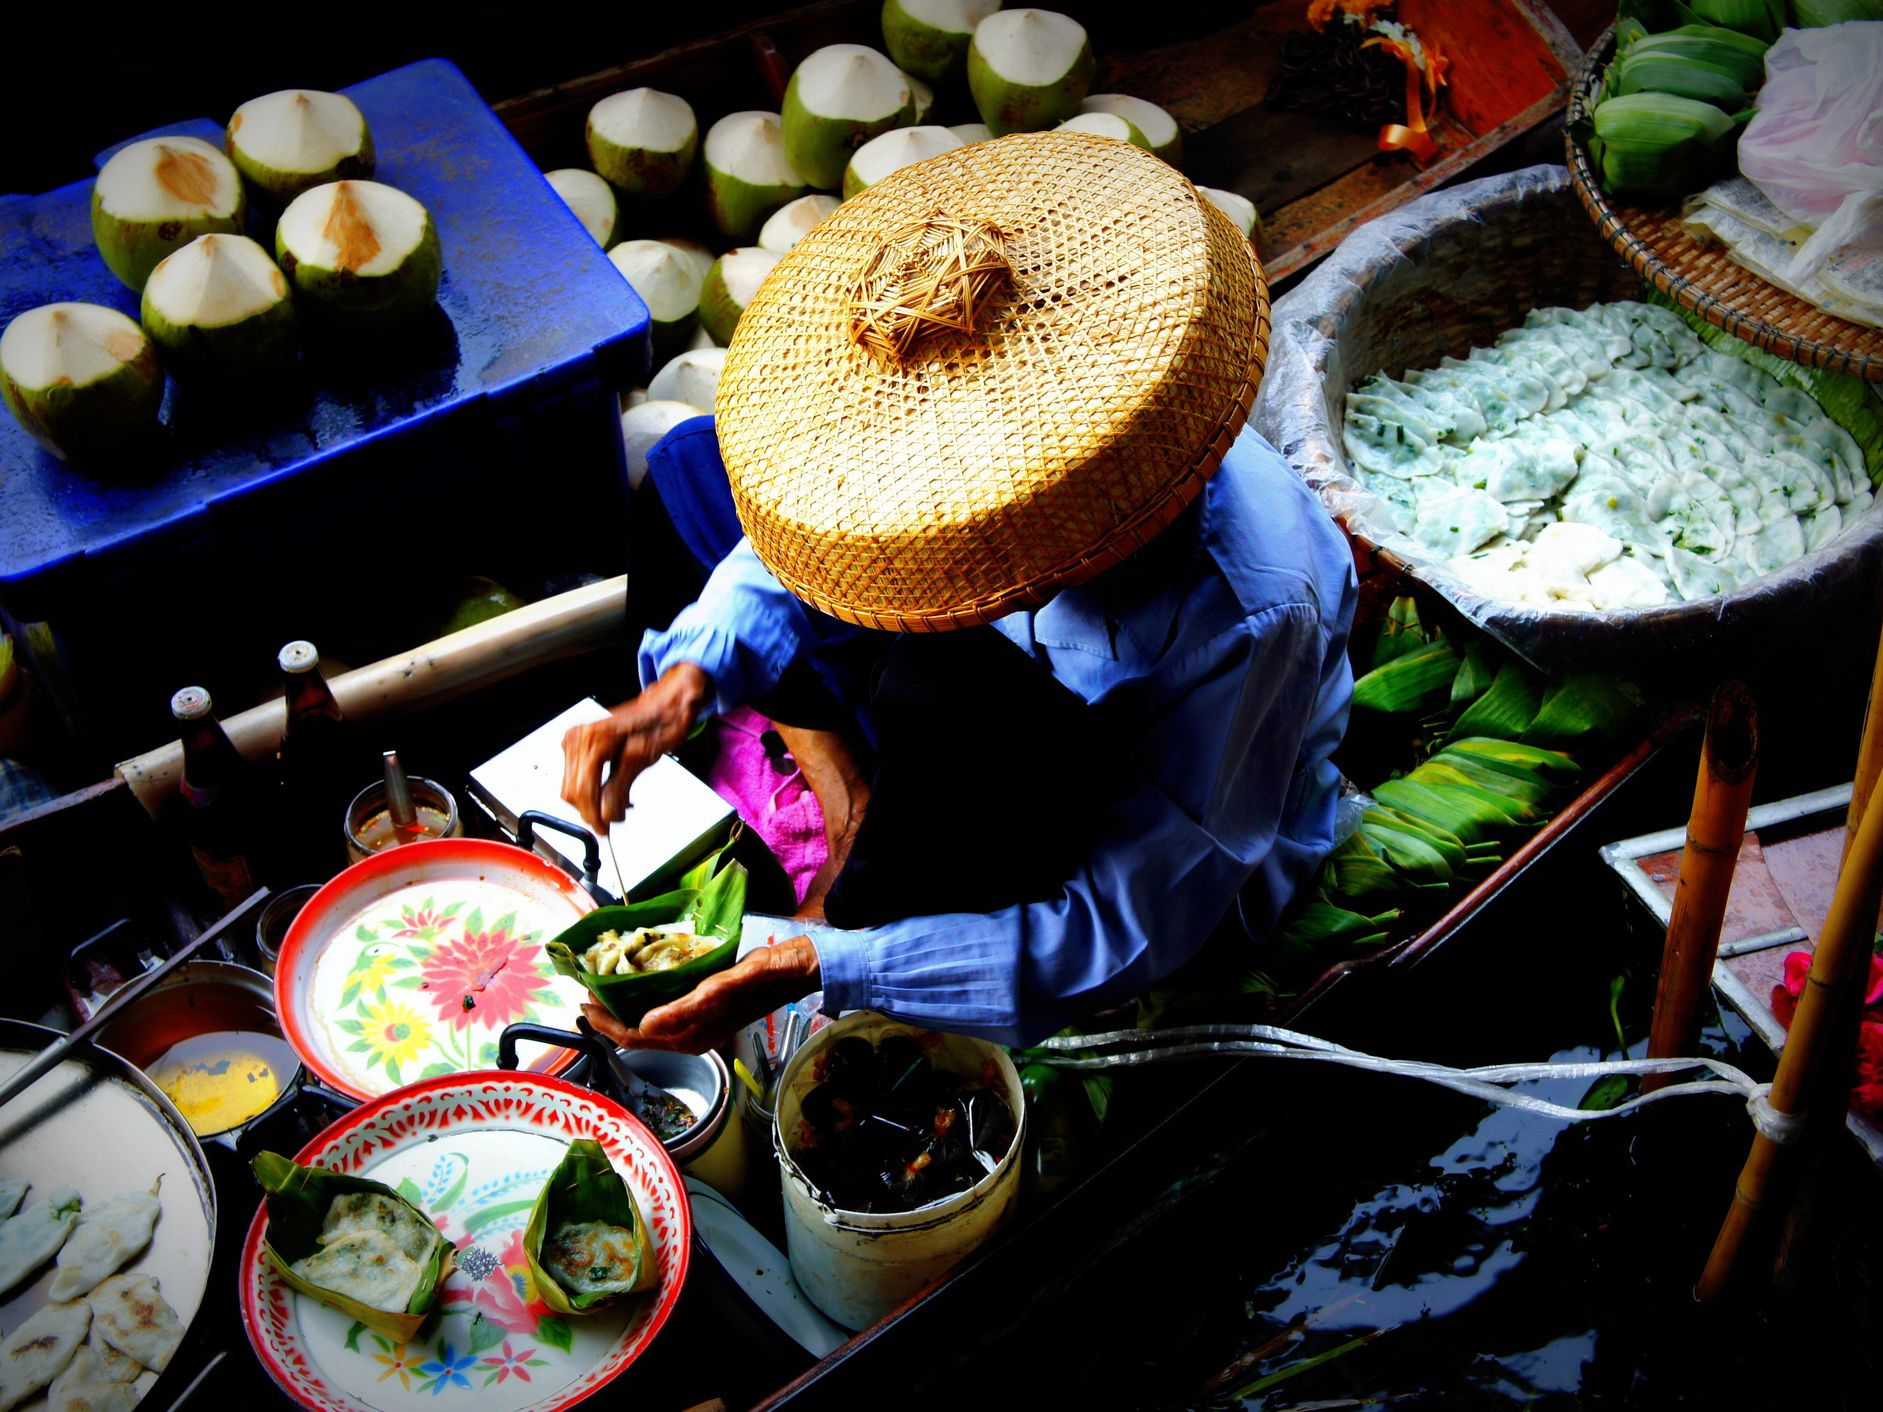 A Culinary Tour of Thailand